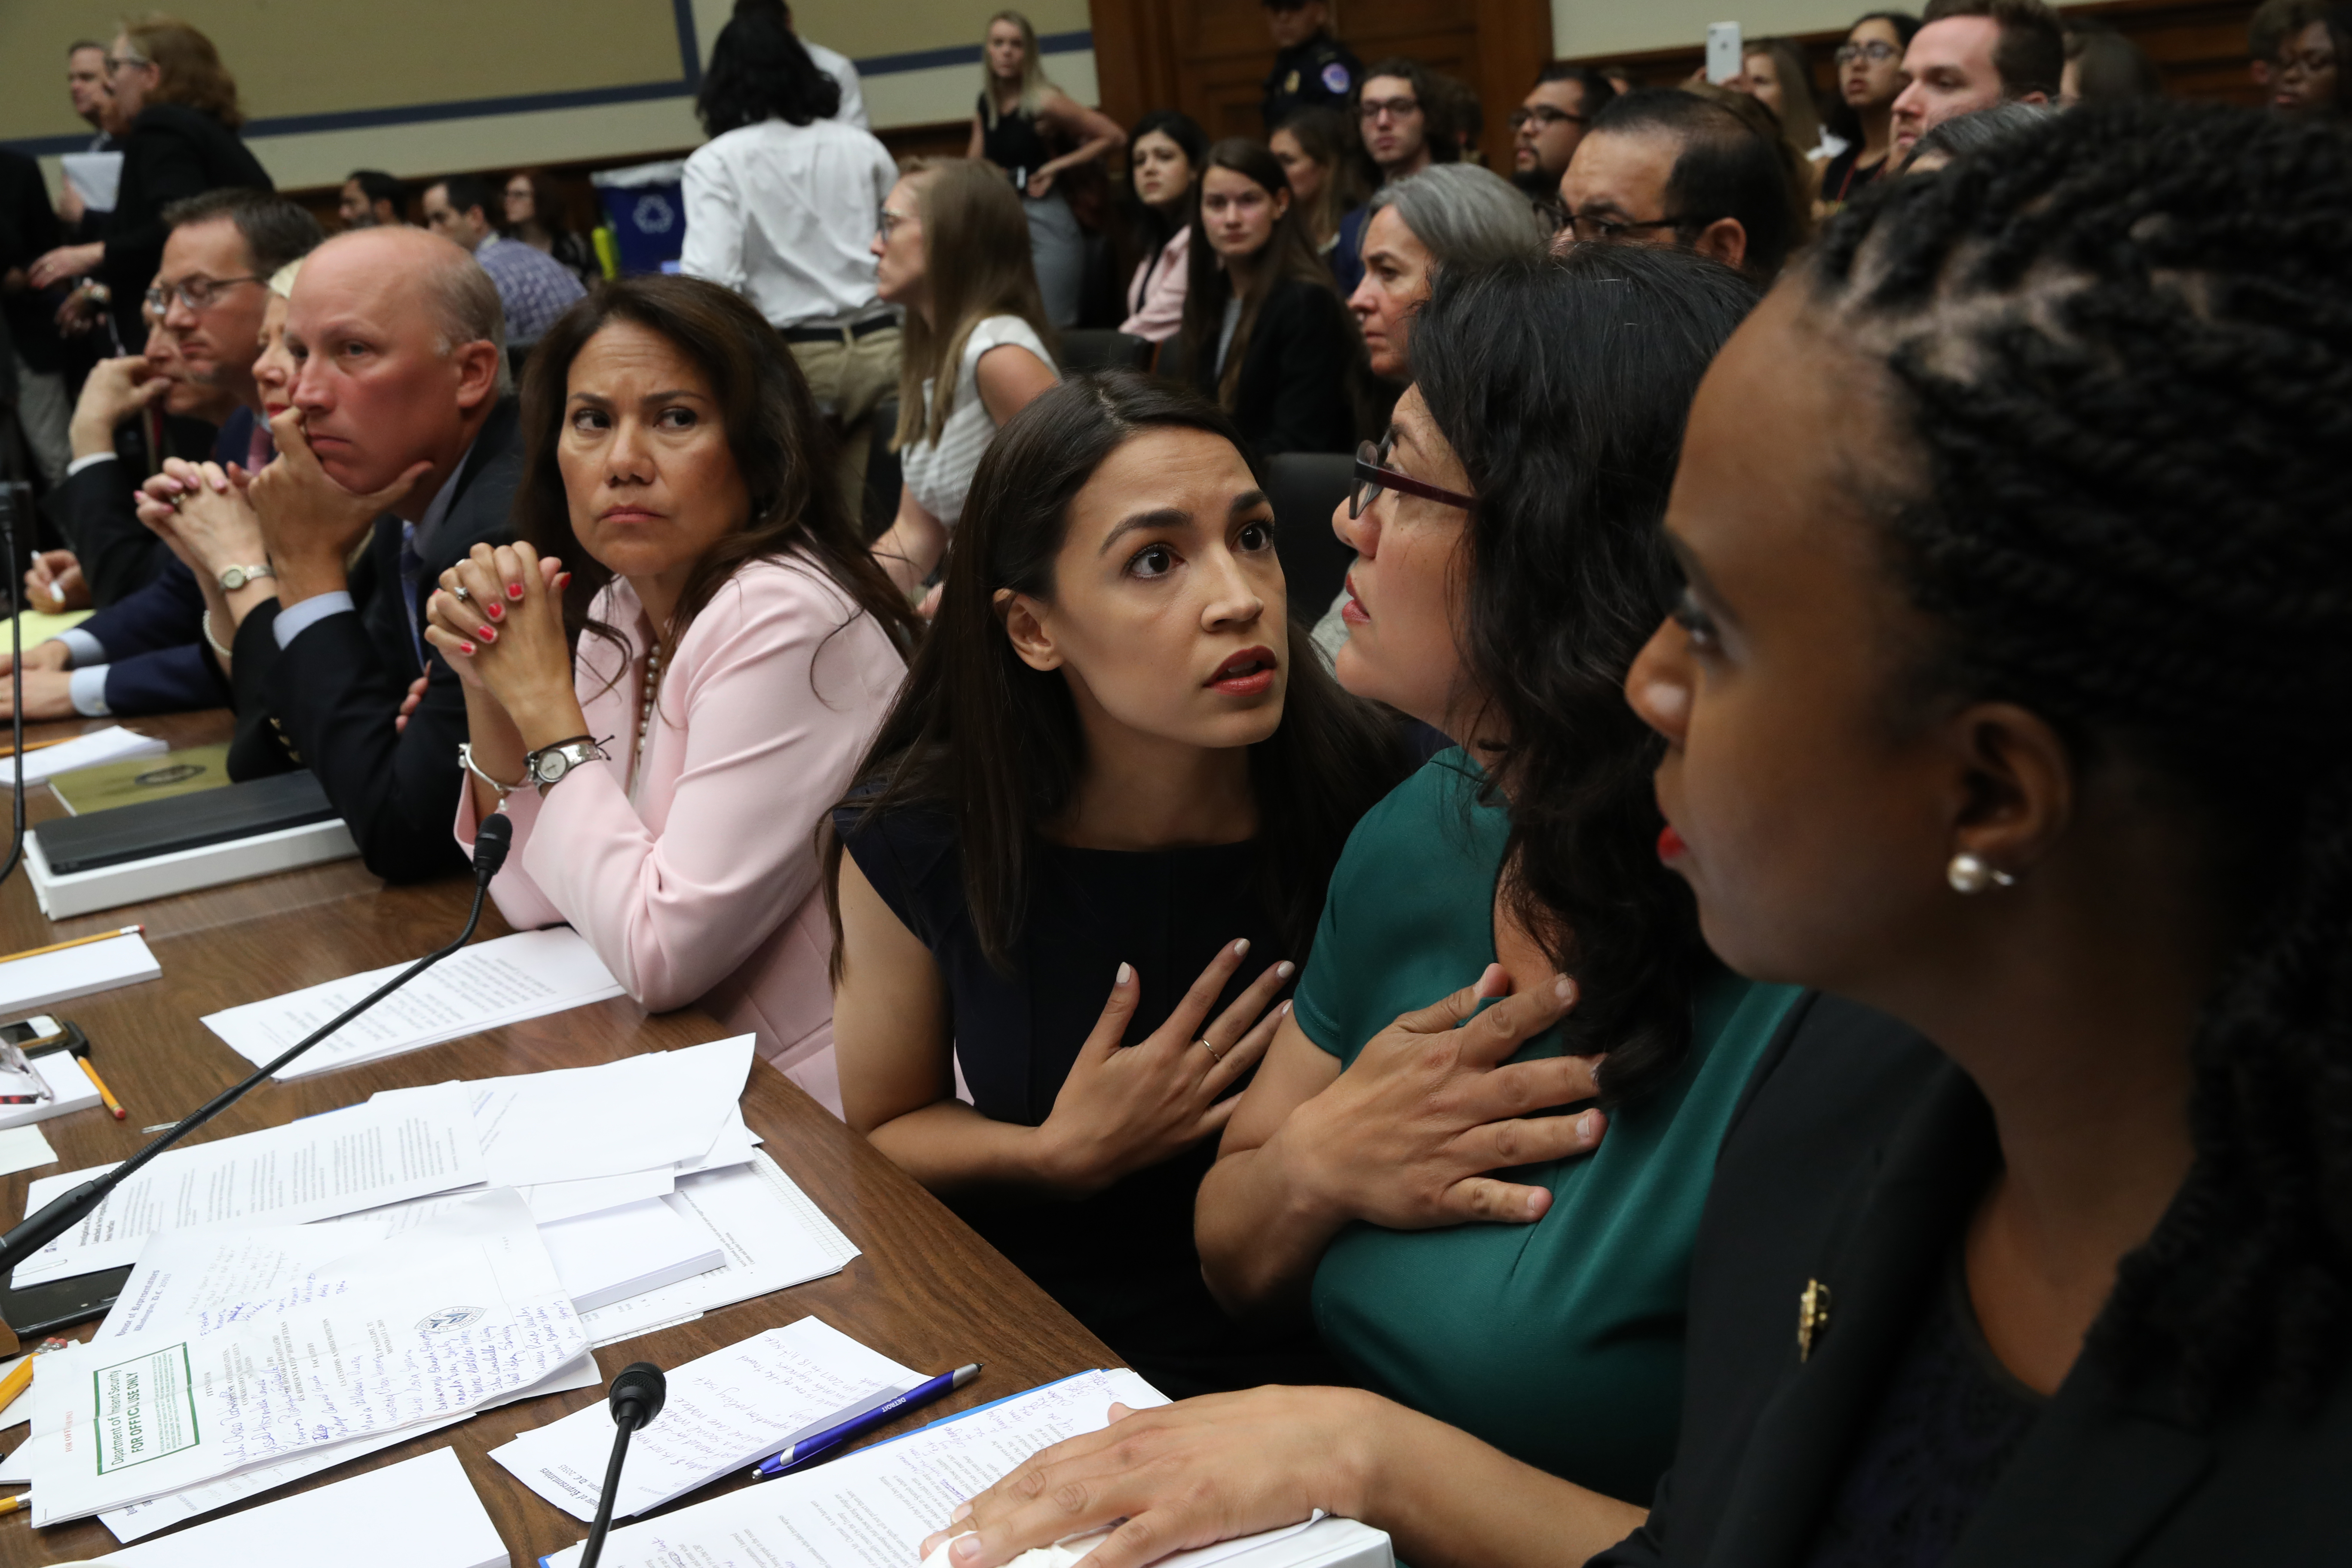 "U.S. Rep. Alexandria Ocasio-Cortez (D-NY) (3R) speaks with Rep. Rashida Tlaib (D-MI) (2R) as U.S. Rep. Veronica Escobar (D-TX) (4R) and Rep. Ayanna S. Pressley (D-MA) (R) look on during a House Oversight and Reform Committee holds a hearing on ""The Trump Administration's Child Separation Policy: Substantiated Allegations of Mistreatment."" July 12, 2019 in Washington, DC. (Photo by Win McNamee/Getty Images)"